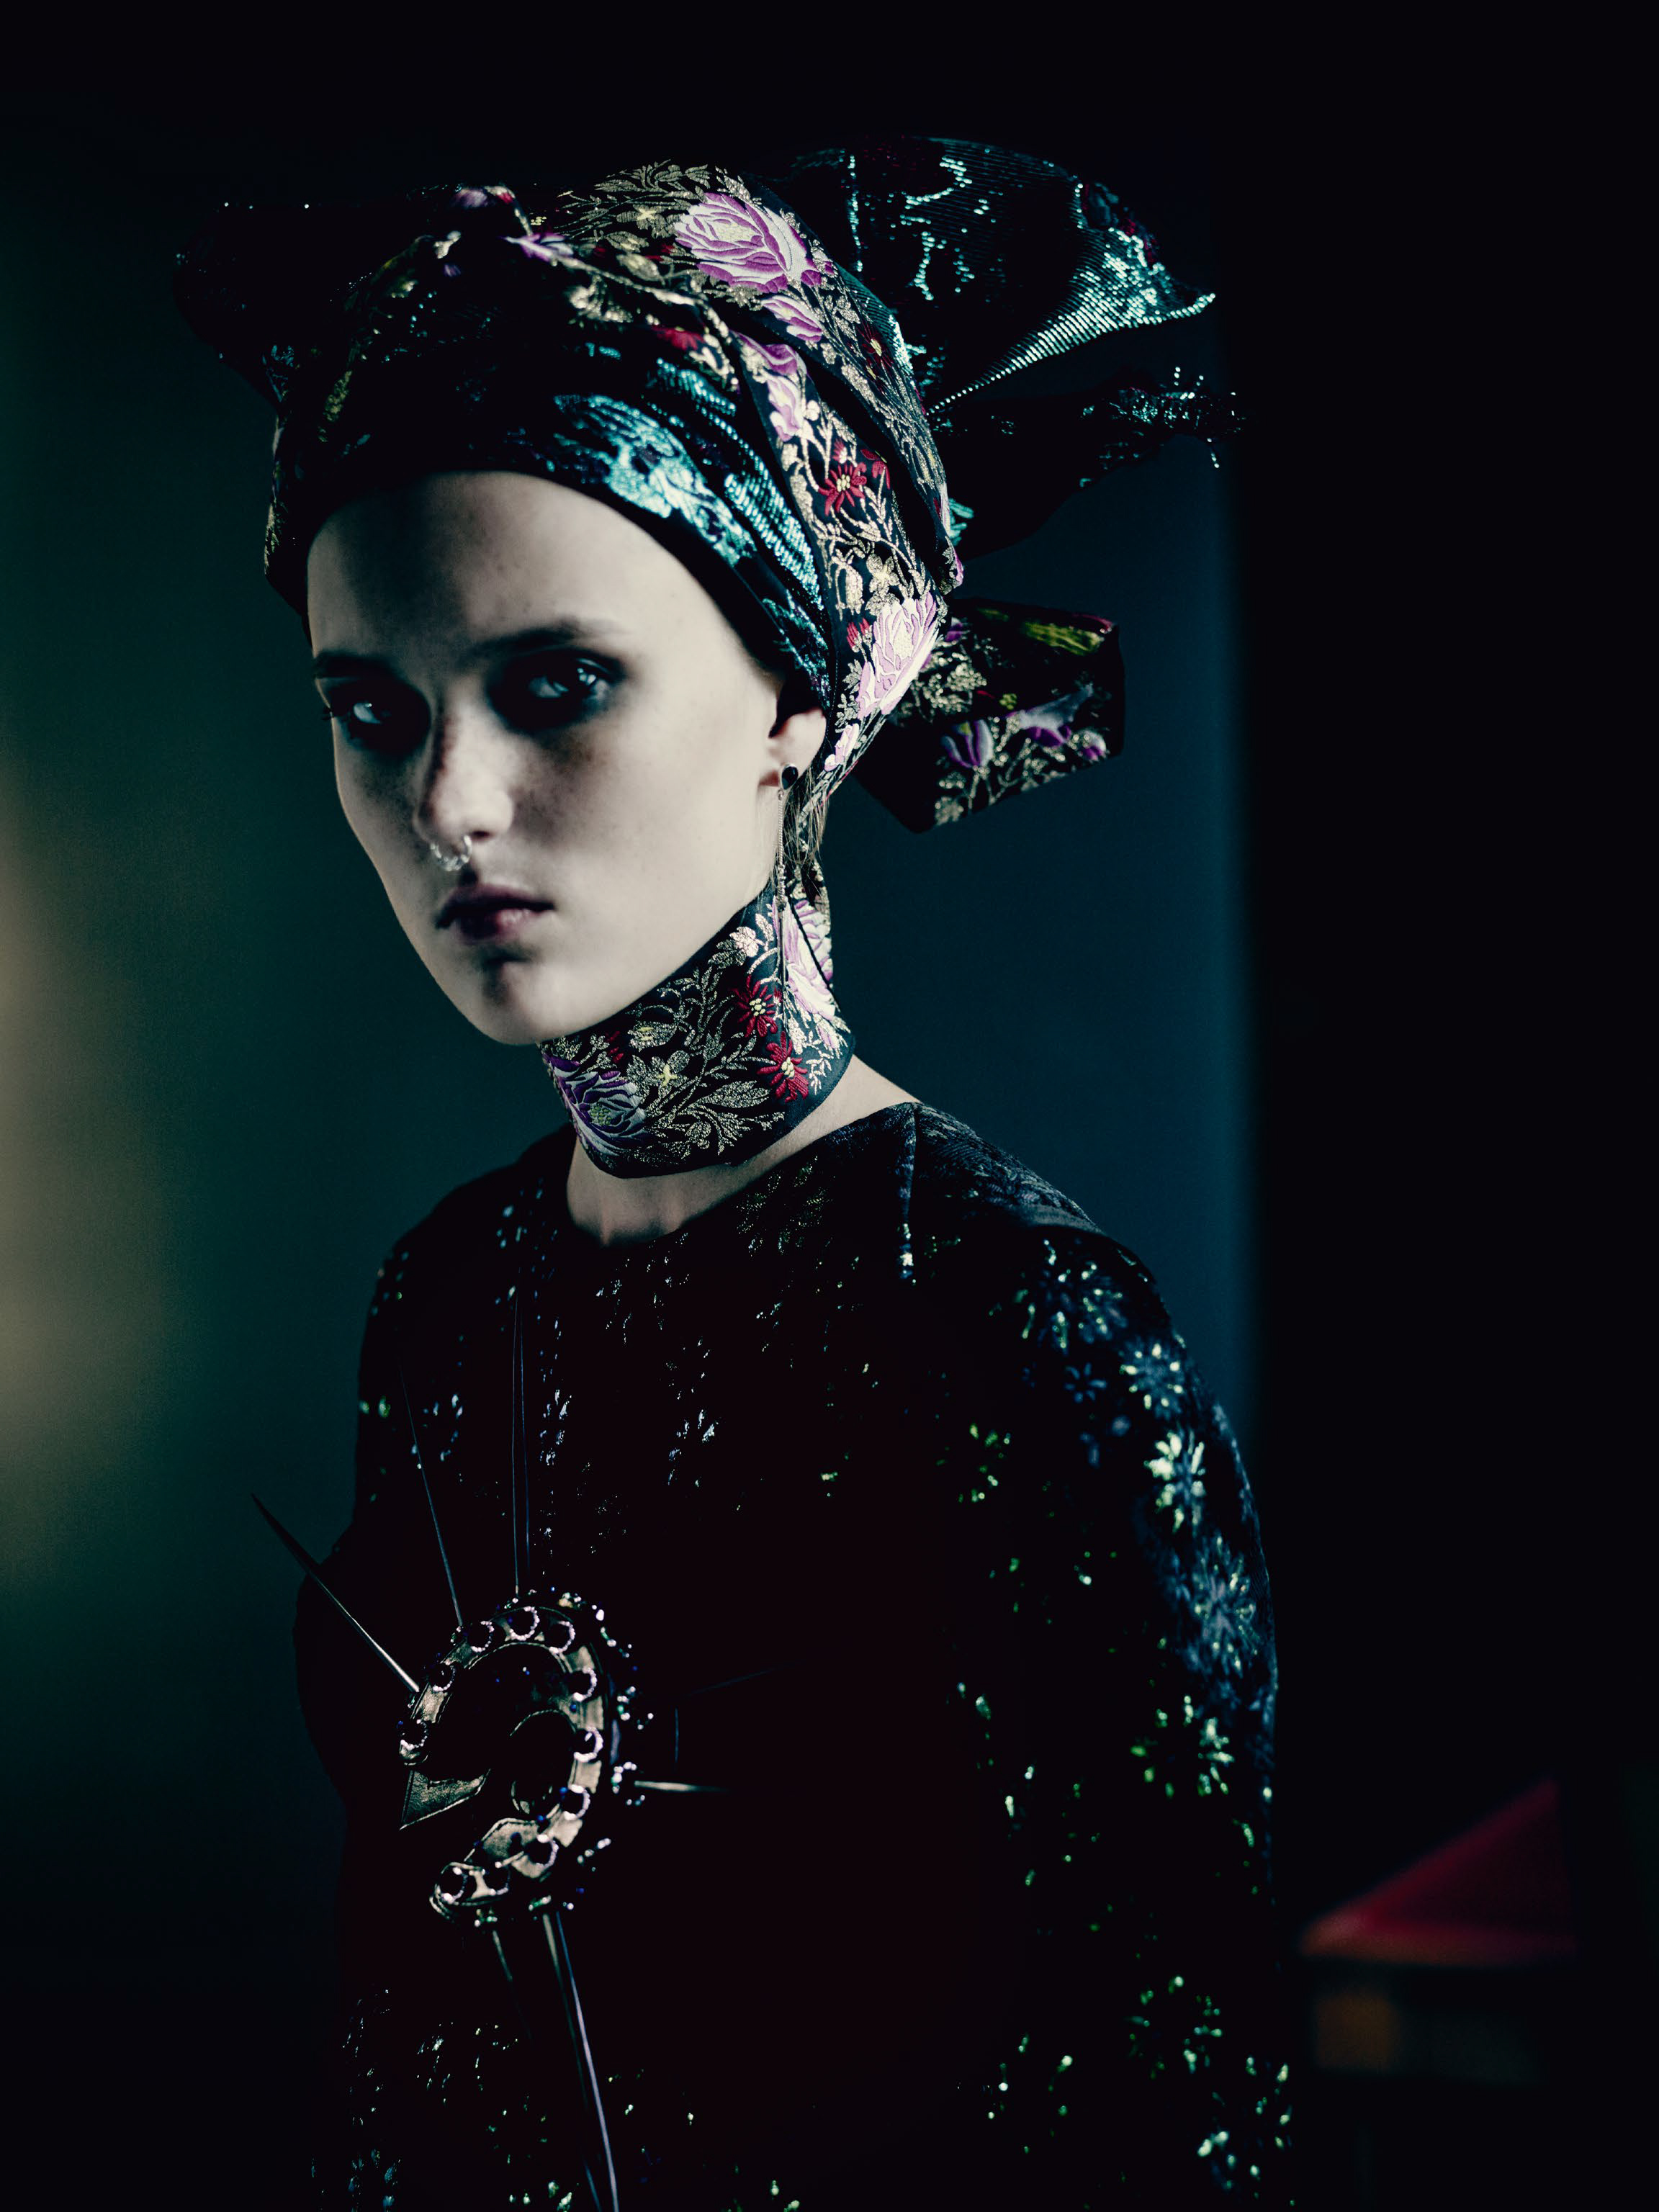 paolo roversi �the shining� for vogue uk september 2015